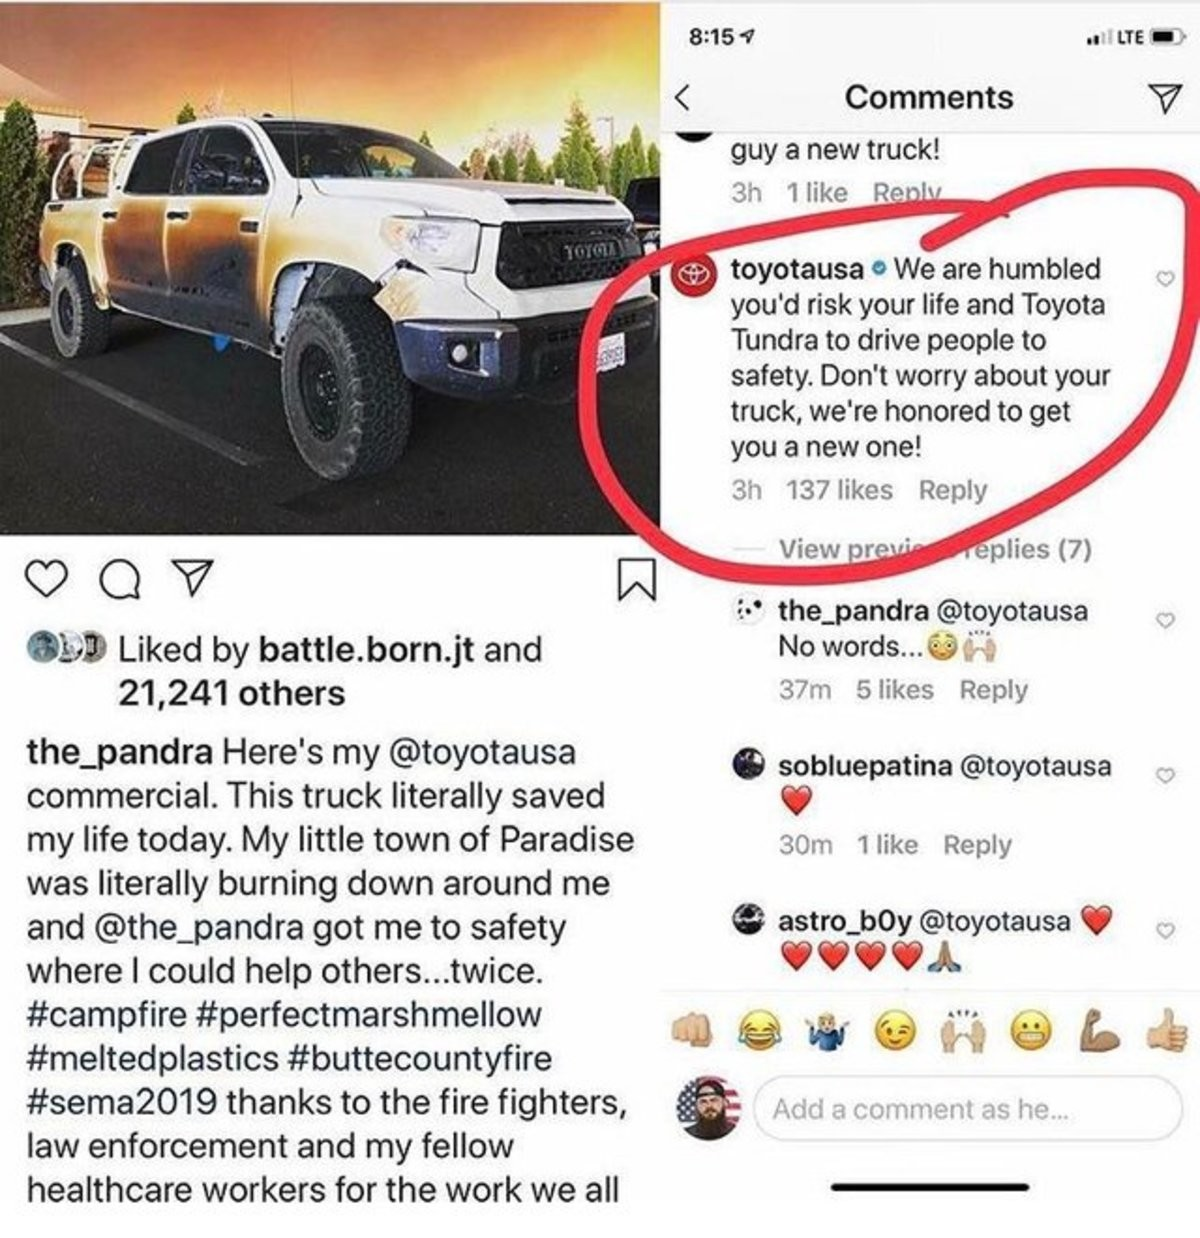 1229. .. Big deal, he got burned his car a little and now he gets a new truck. Some people have the best luck. This is so unfair.